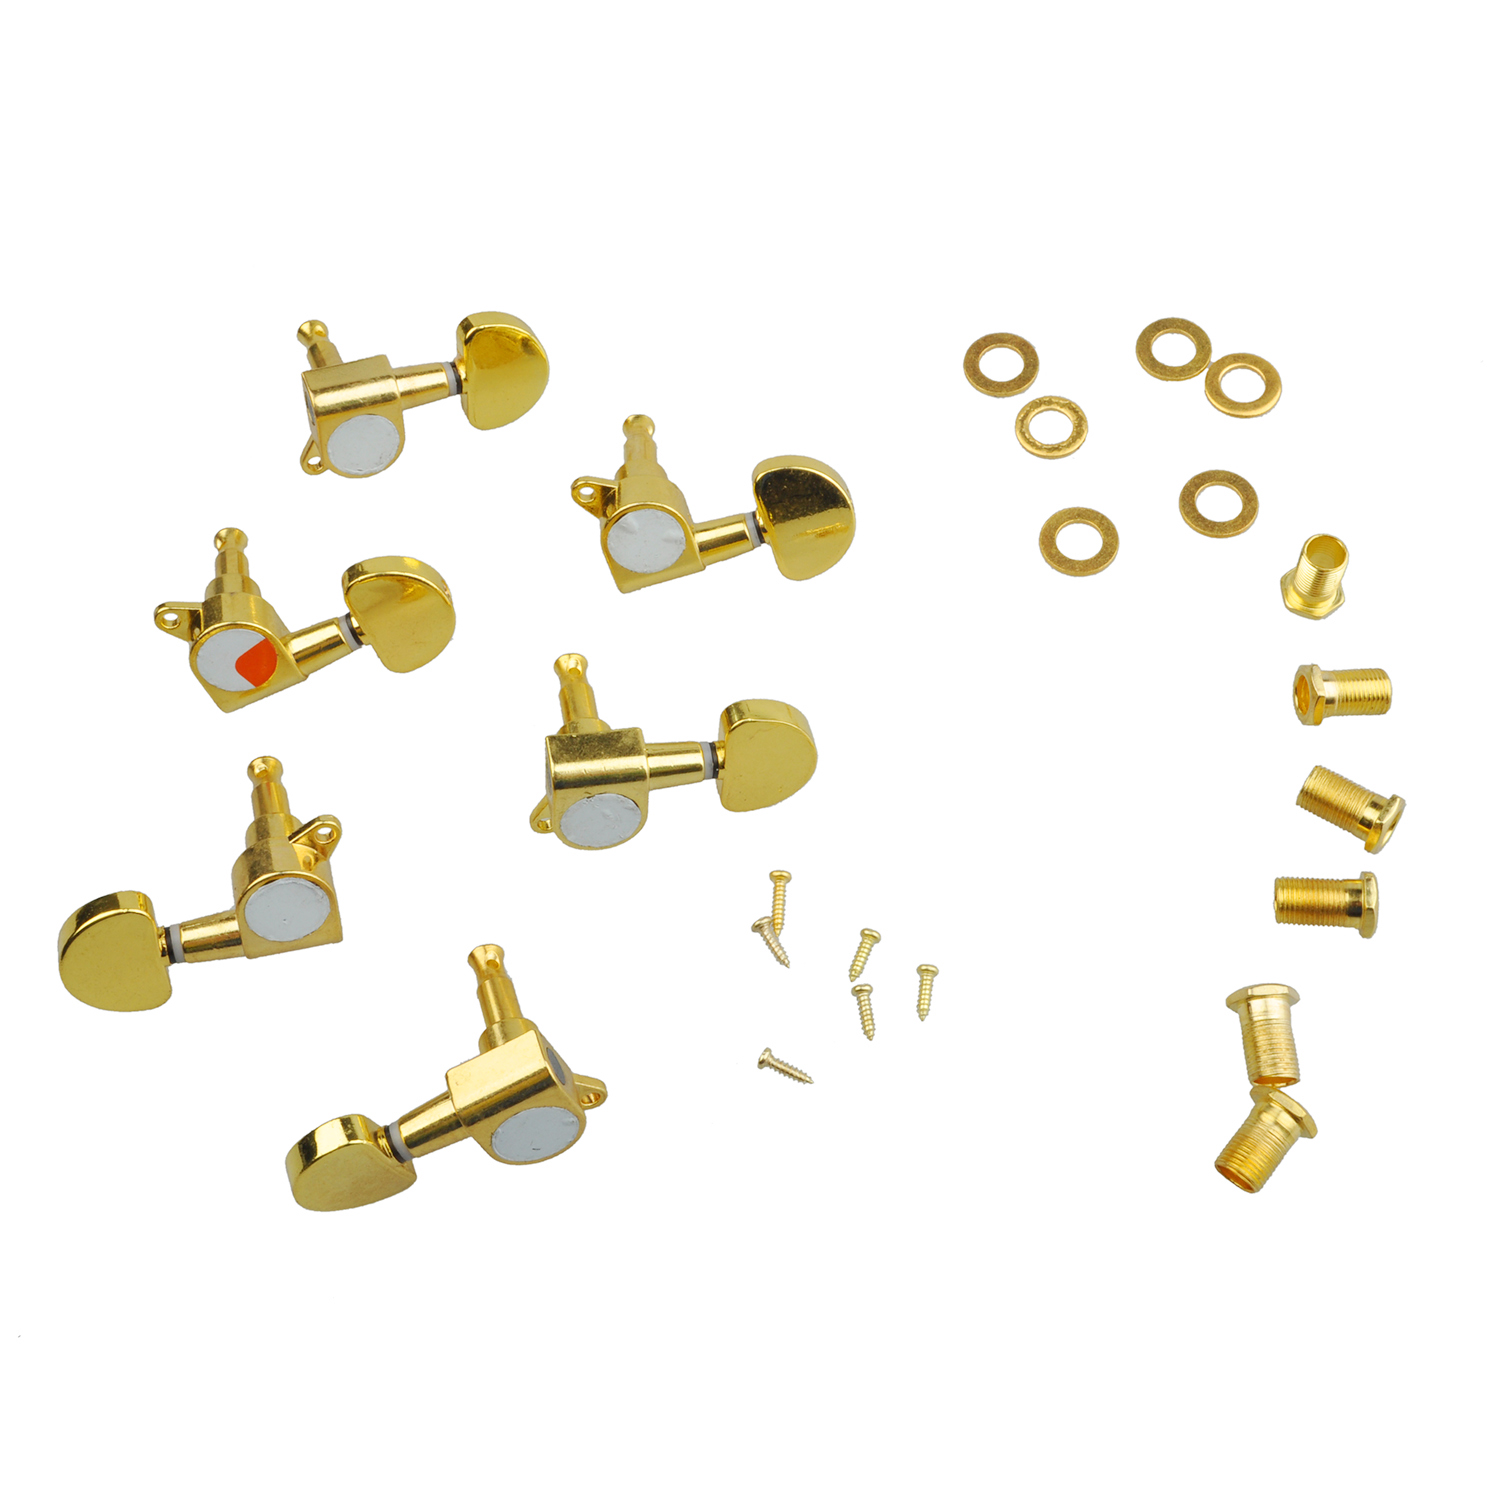 3 Pairs Sealed Guitar String Tuning Pegs Tuners Machine Heads Gold / Steel and Zinc Alloy Gold Guitar Heads with Mounting Screws